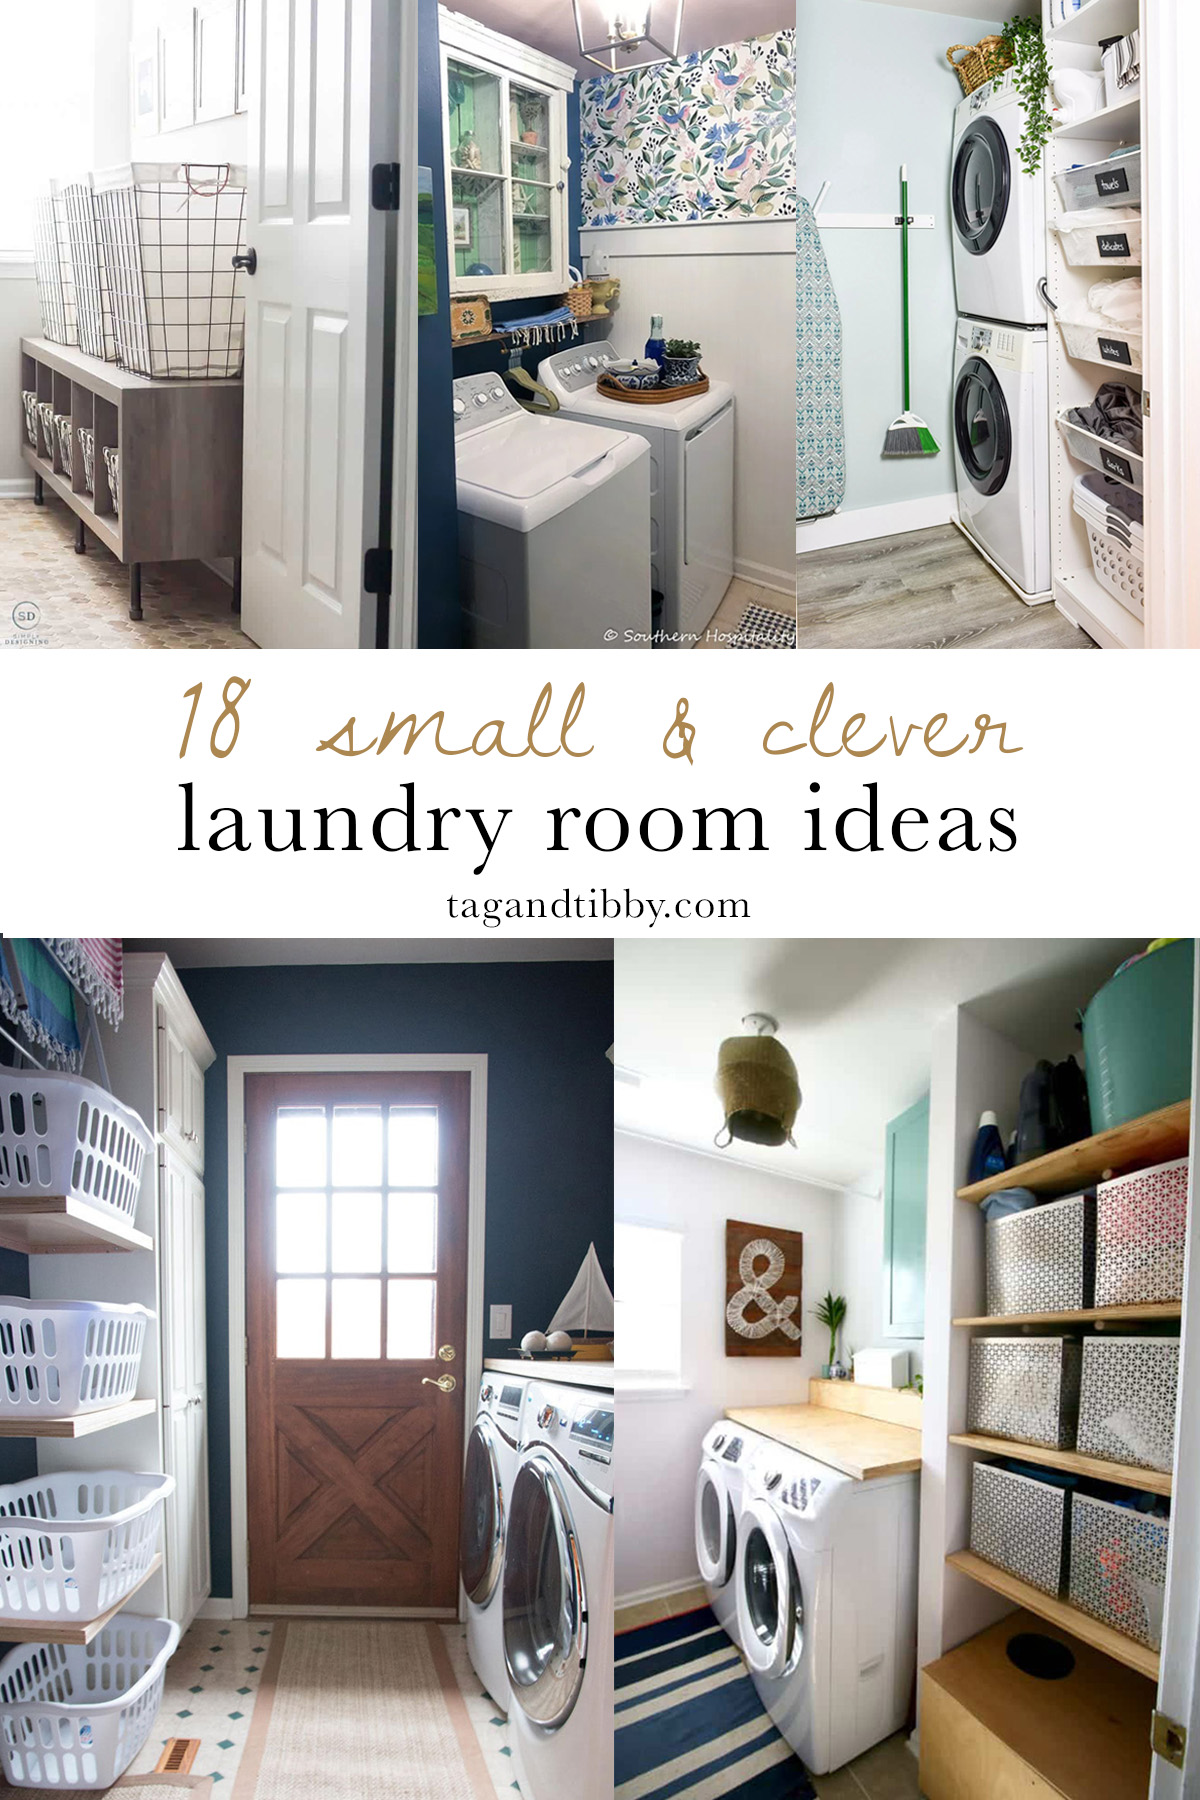 18 genius small laundry room makeover ideas for your home #homeimprovement #laundryroom #laundrycloset